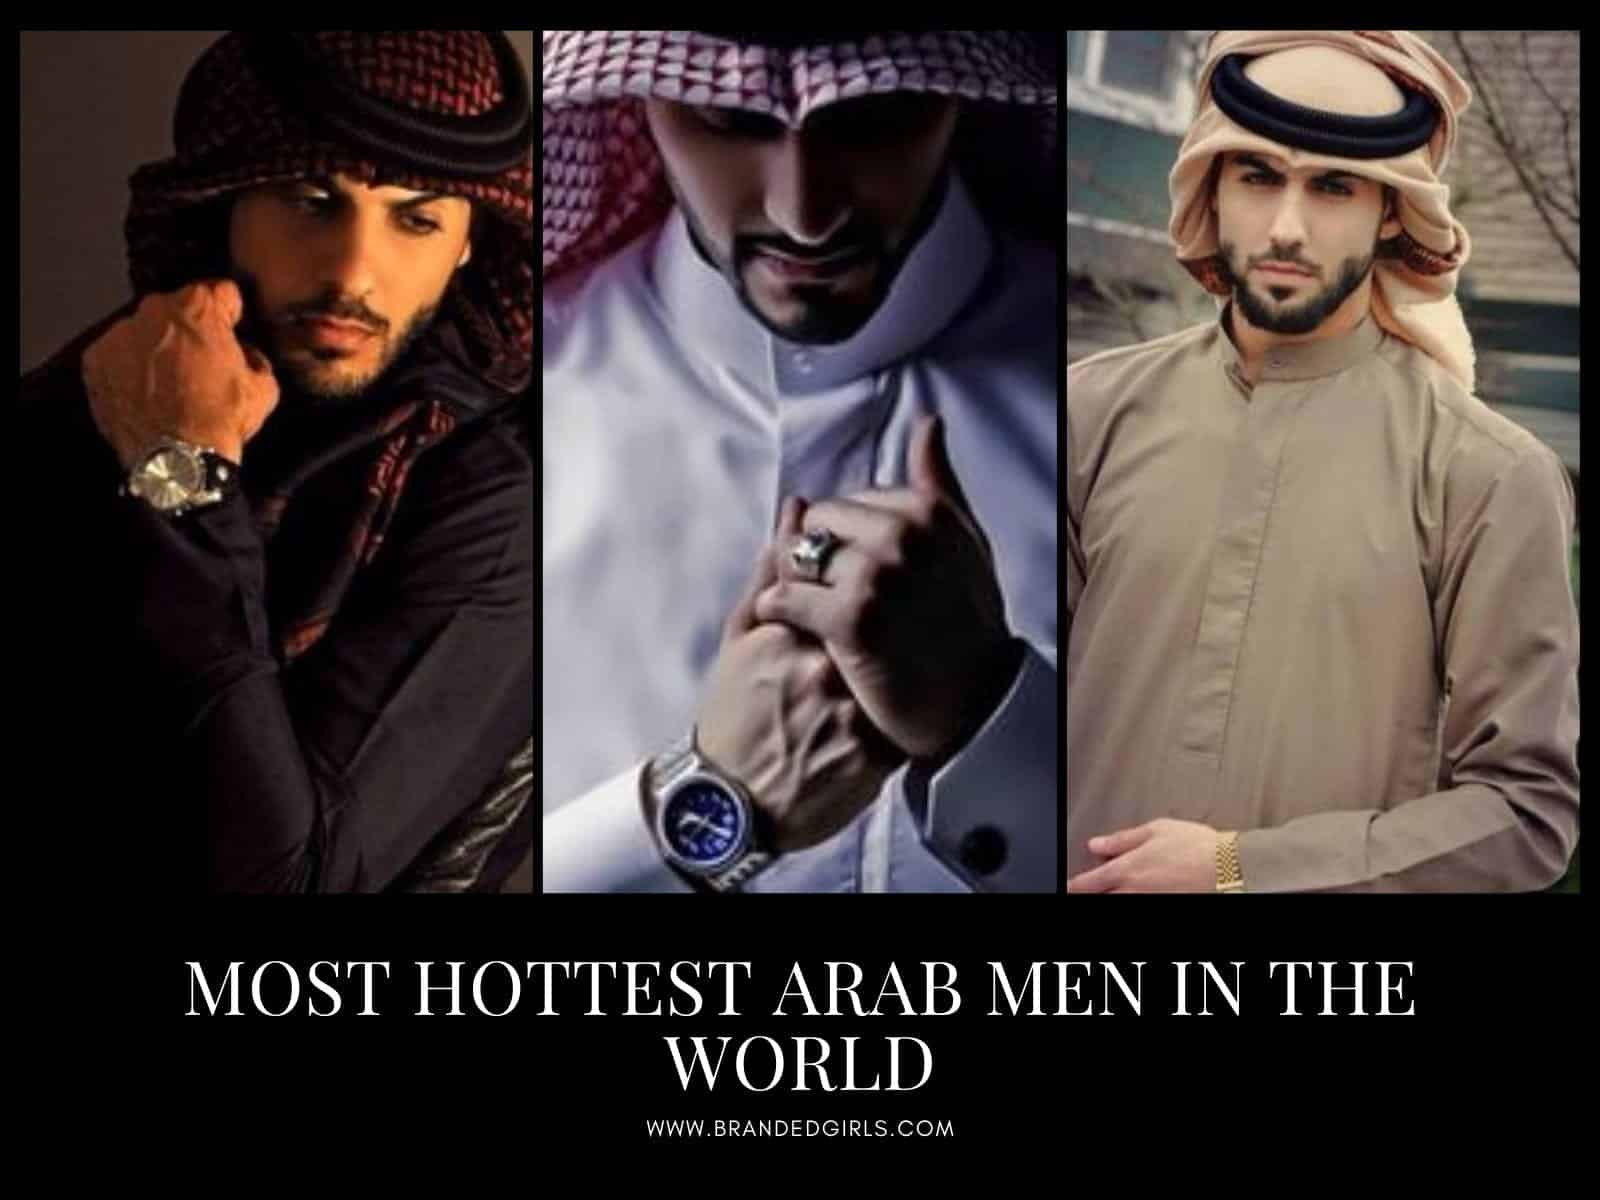 Most-Handsome-Arab-Men-in-the-World 20 Most Handsome Arab Men in the World - Hottest Arab Guys